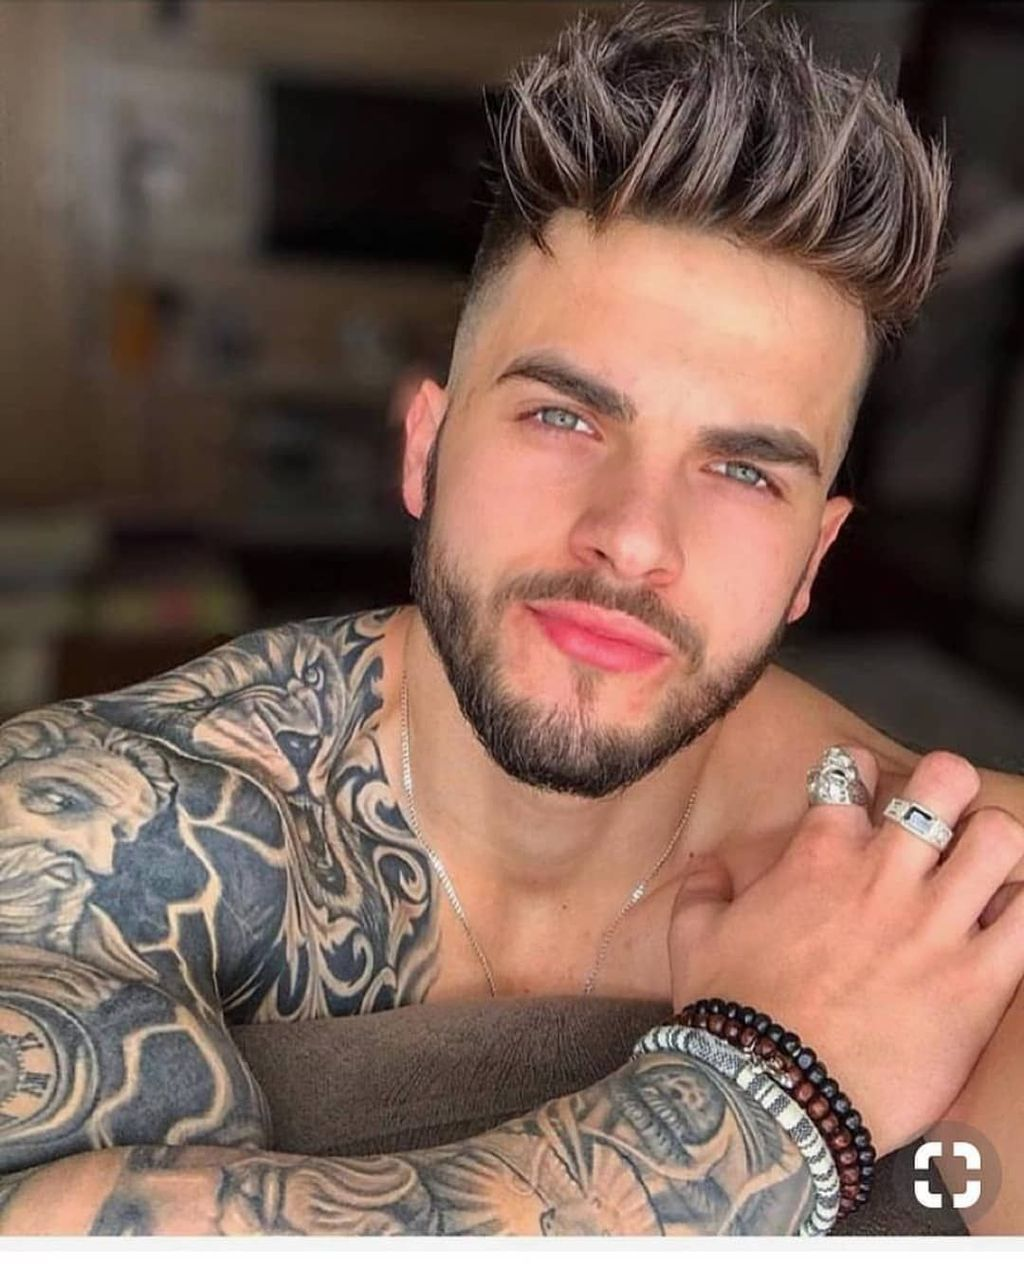 20 Lovely Haircuts Ideas For Men That Looks Elegant Trending Hairstyles For Men Haircuts For Men Mens Hairstyles